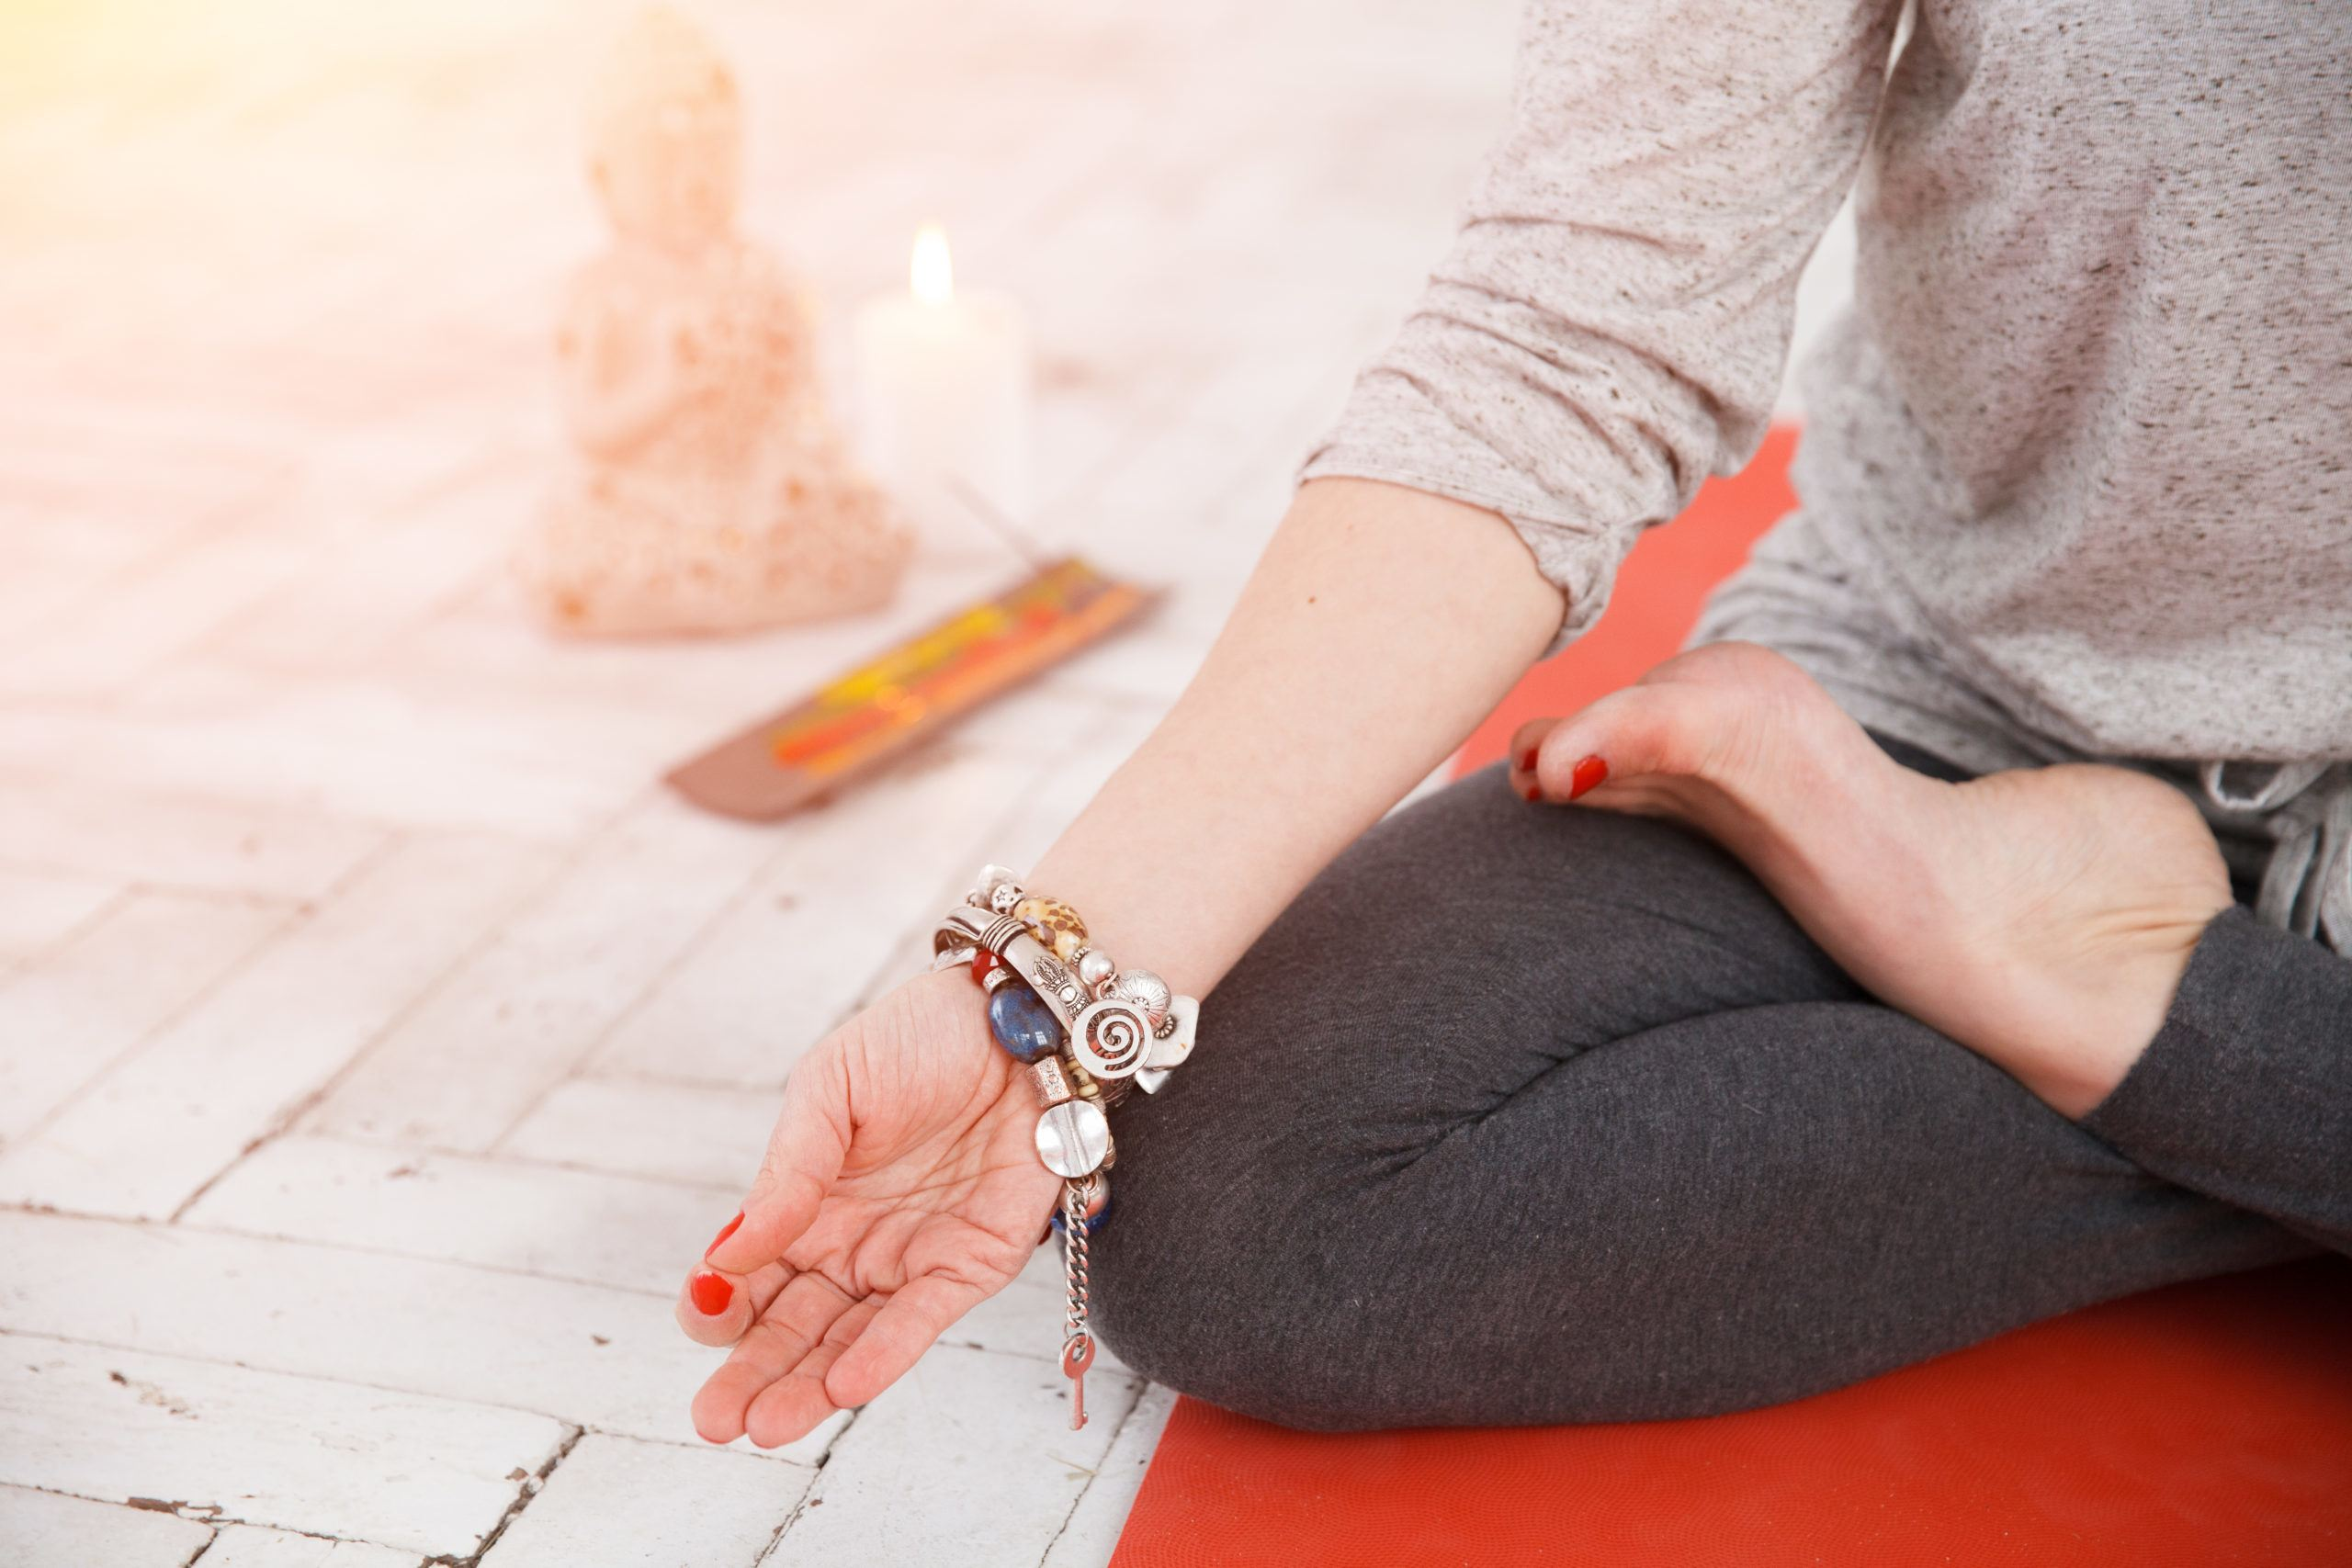 Woman sitting in lotus asana and doing grounding meditation with spiritual accessories, candles and Buddha statue.